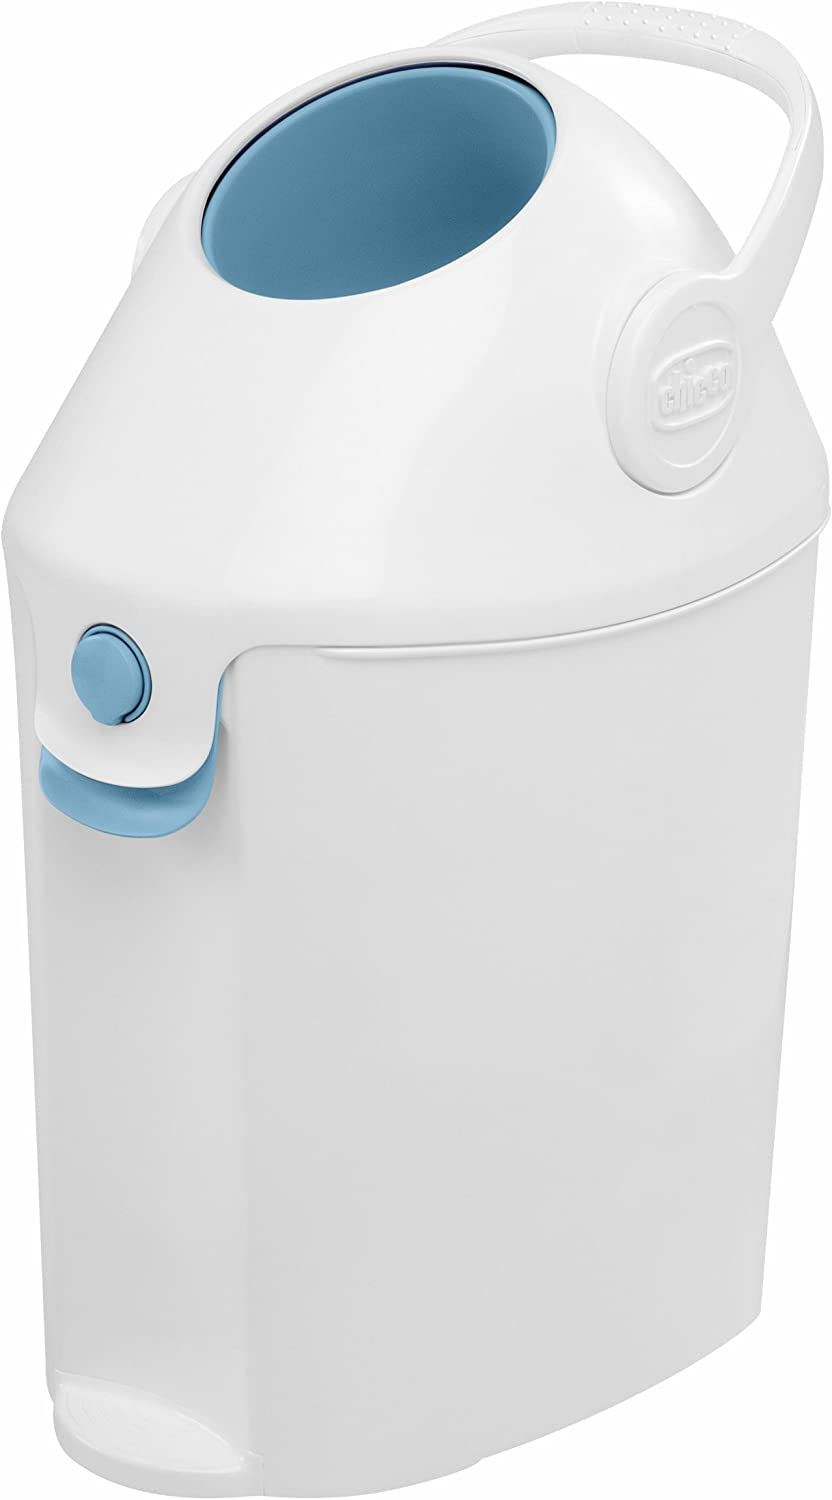 Chicco Nappy Bin Odour Proof System Use Conventional Bags